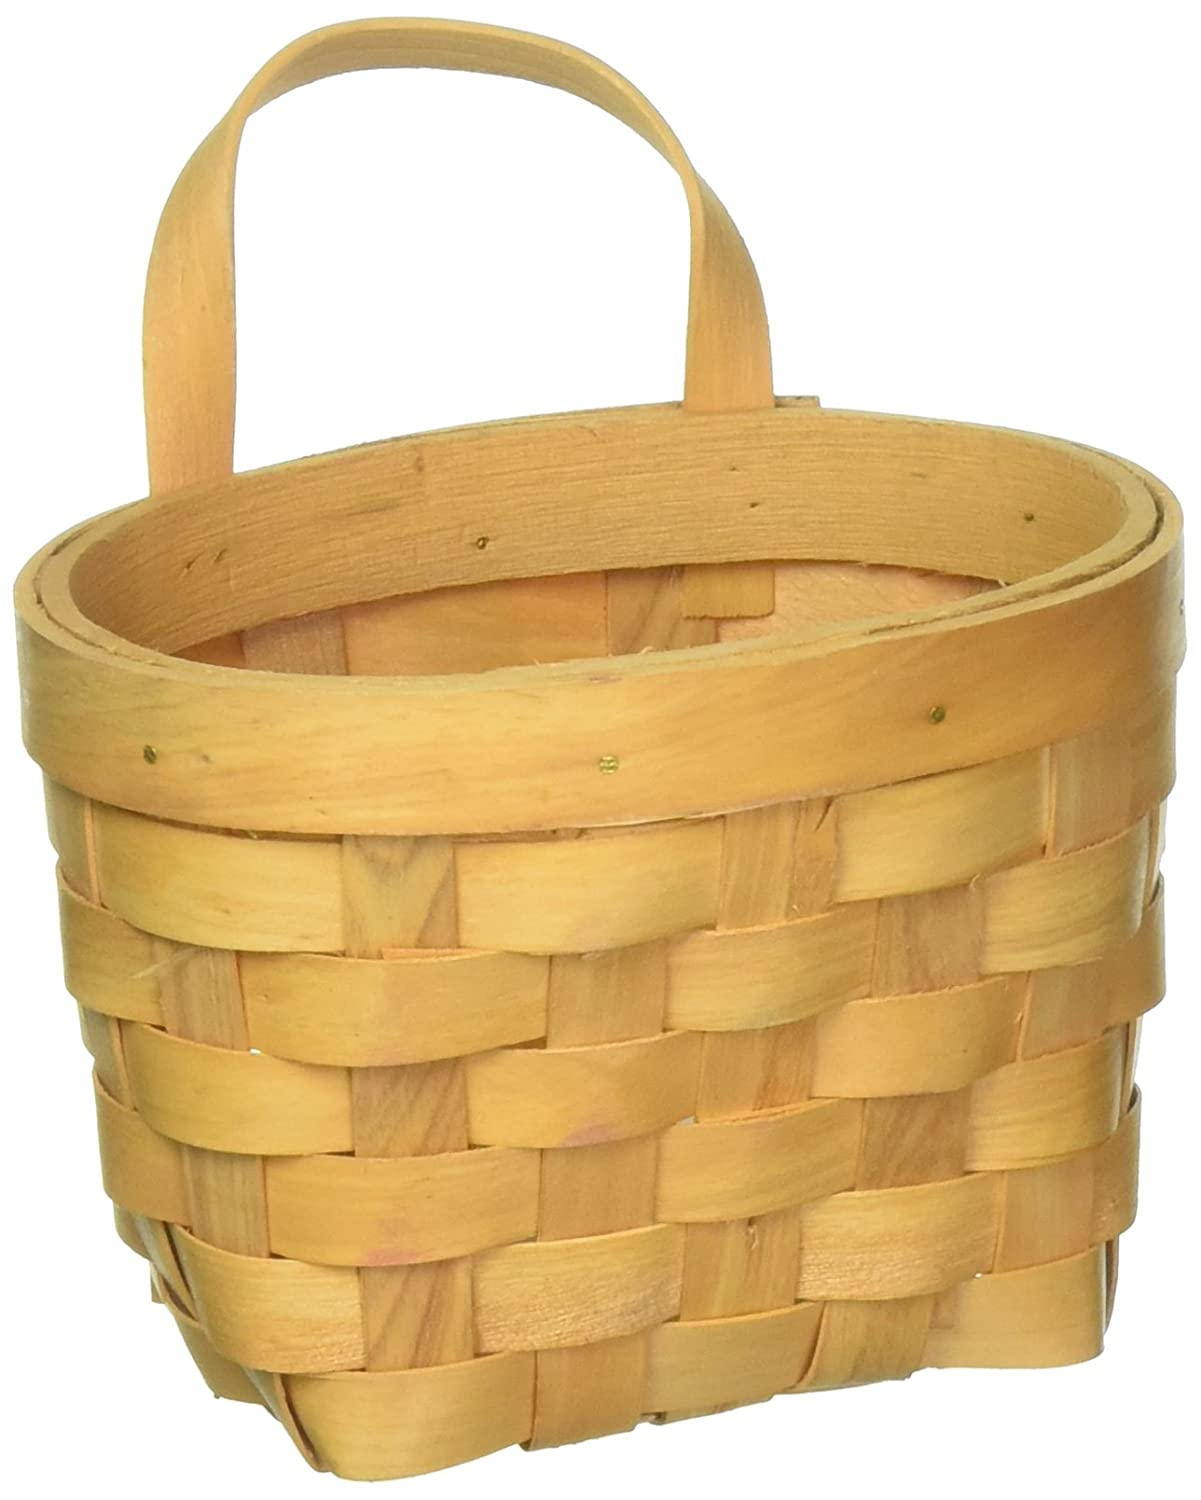 Amazon.com - Darice 2848-07 Basket Wall Woodchip, 6.25\